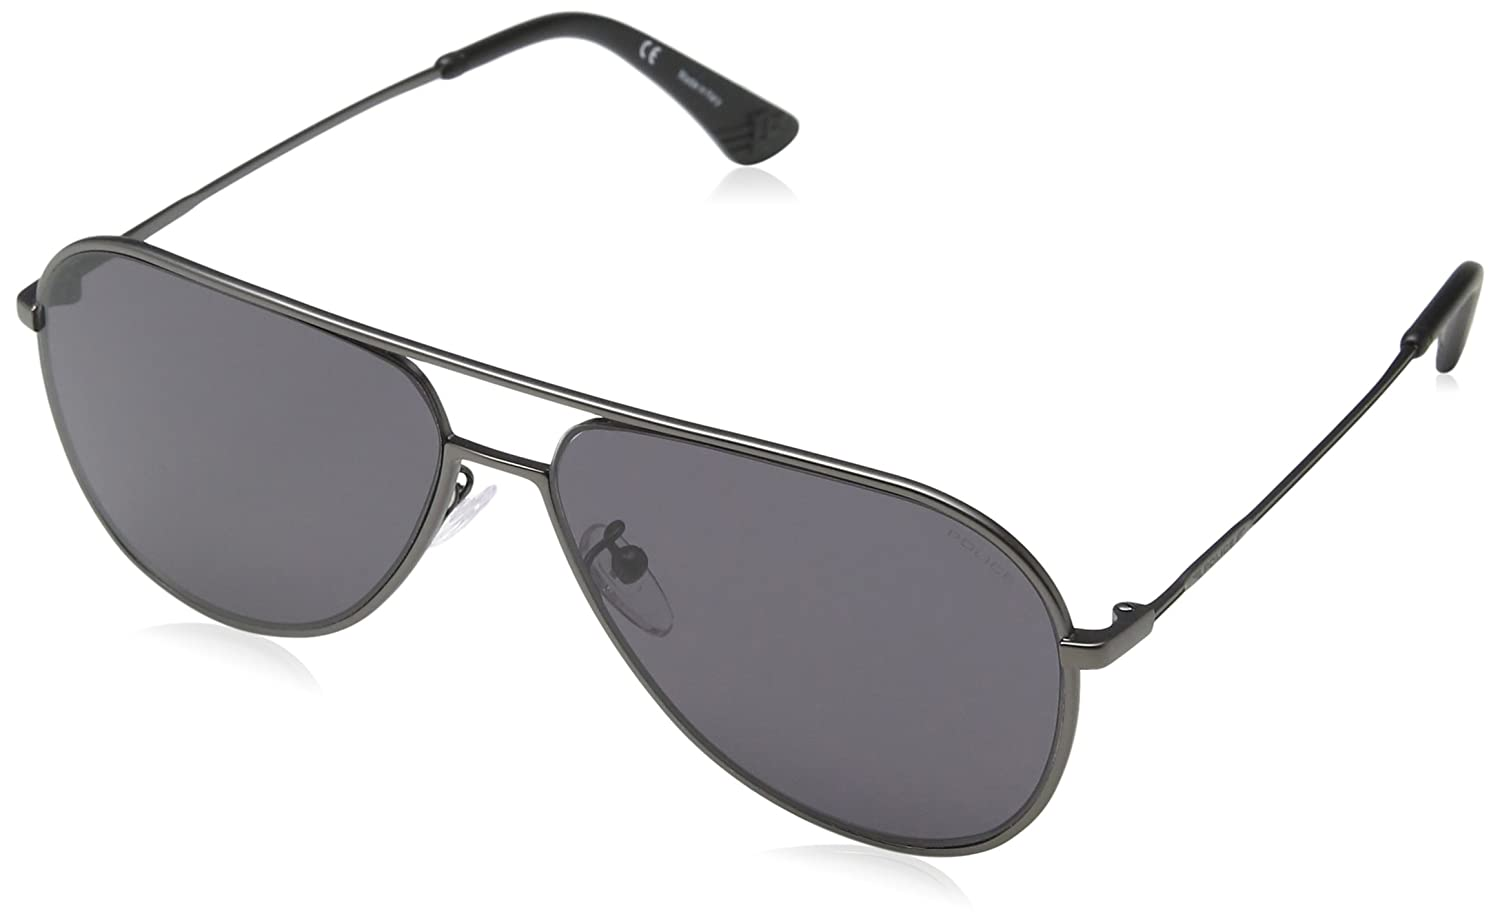 d95412b6bf Sunglasses Police HIGHWAY TWO 1 SPL359 08H5 Unisex Silver Aviator   Amazon.ca  Clothing   Accessories